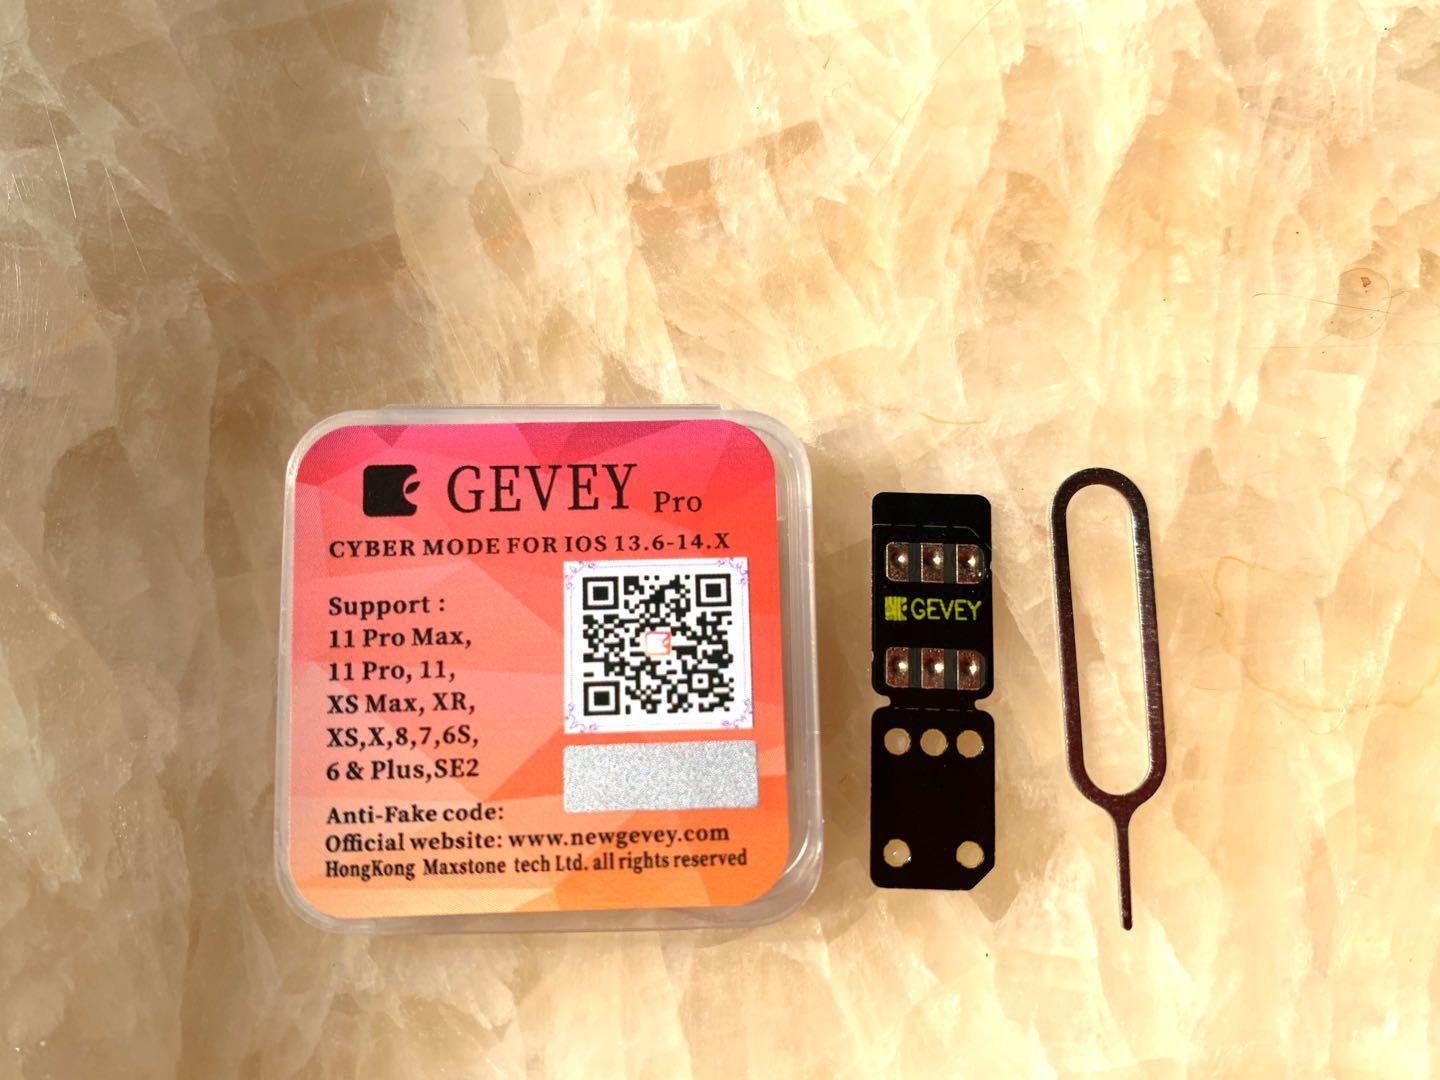 100pcs GEVEY-Pro v14 gv ios14.x 14.2 Unlock card 5G for ip12 11 pro-max 12p /11/8/7/6/5s/se/se2 carriers unlocking sim chip